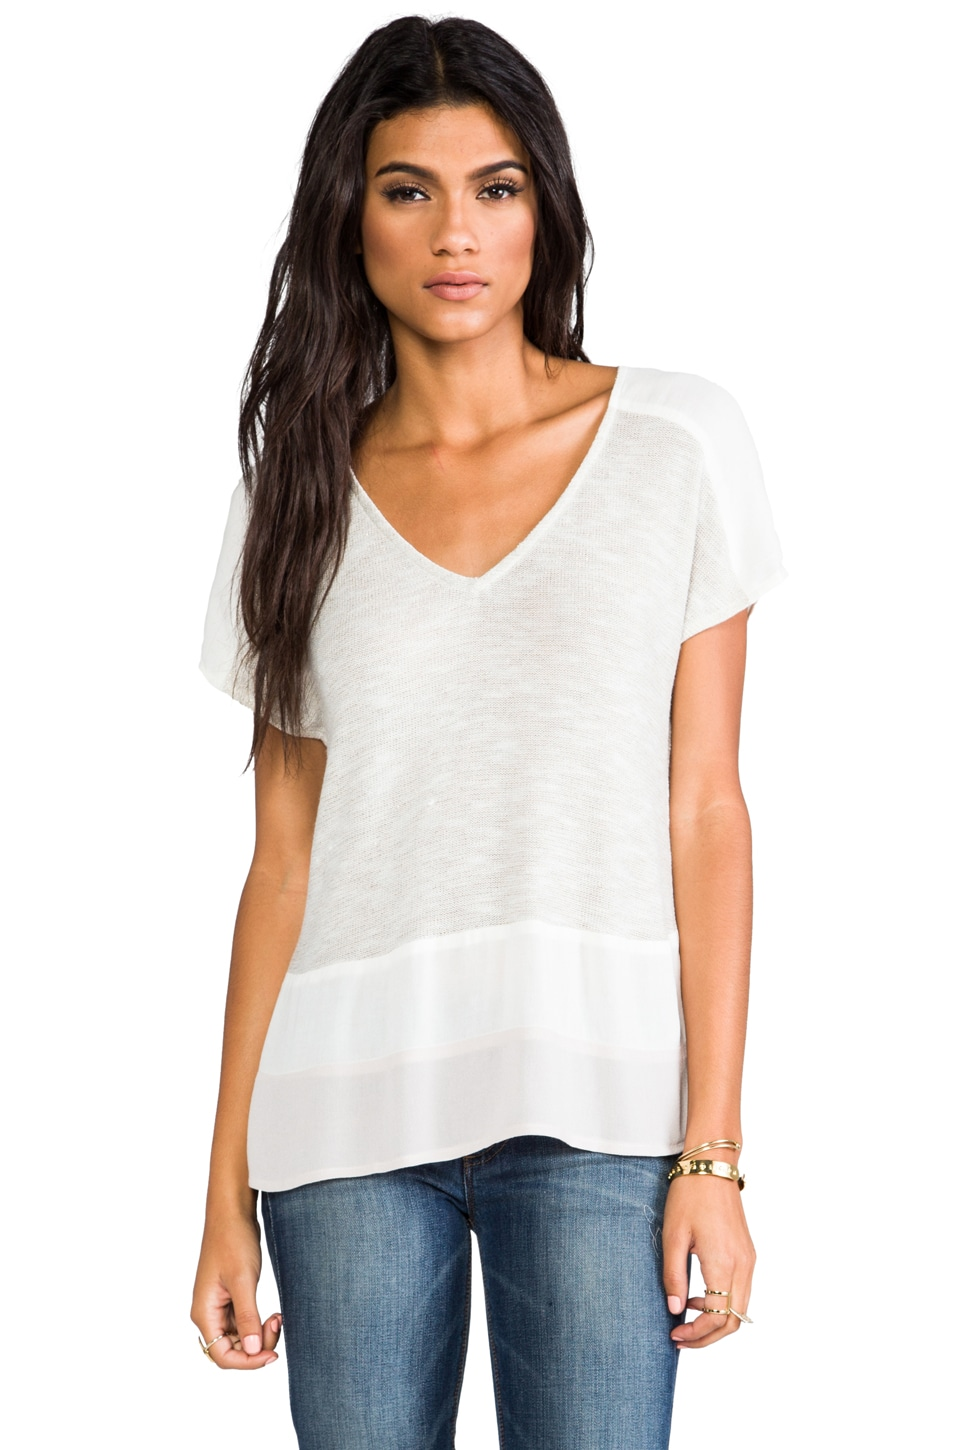 Ella Moss Roxie Short Sleeve Tee in Natural